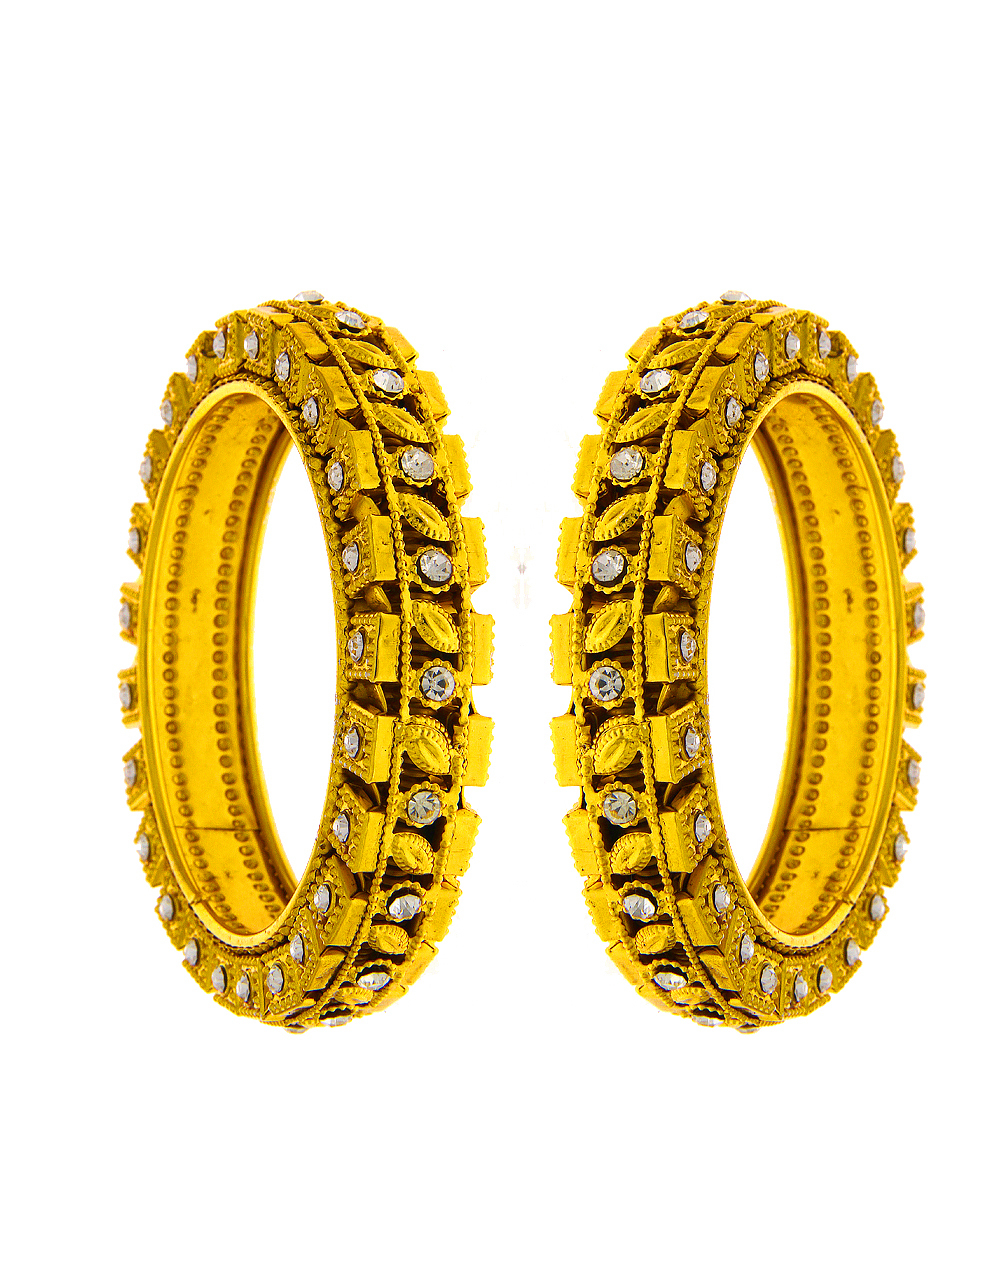 Gold Finish Bangles Studded With Stones Bangles For Women